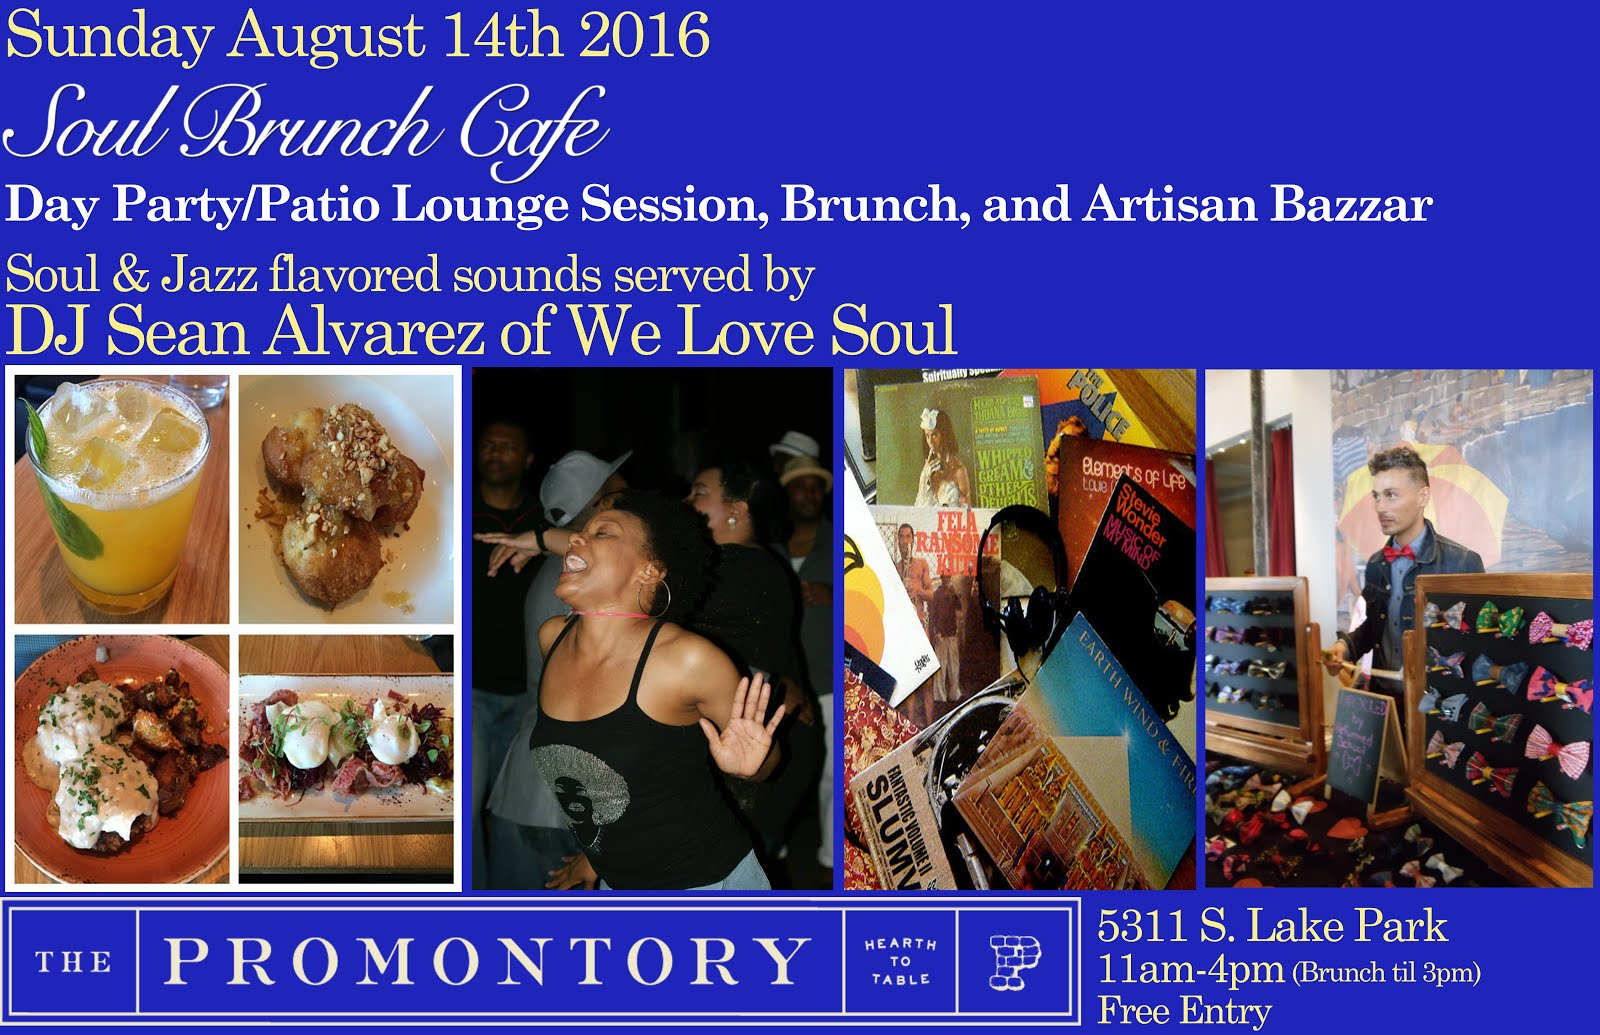 Sunday August 14: Soul Brunch Cafe' @ The Promontory